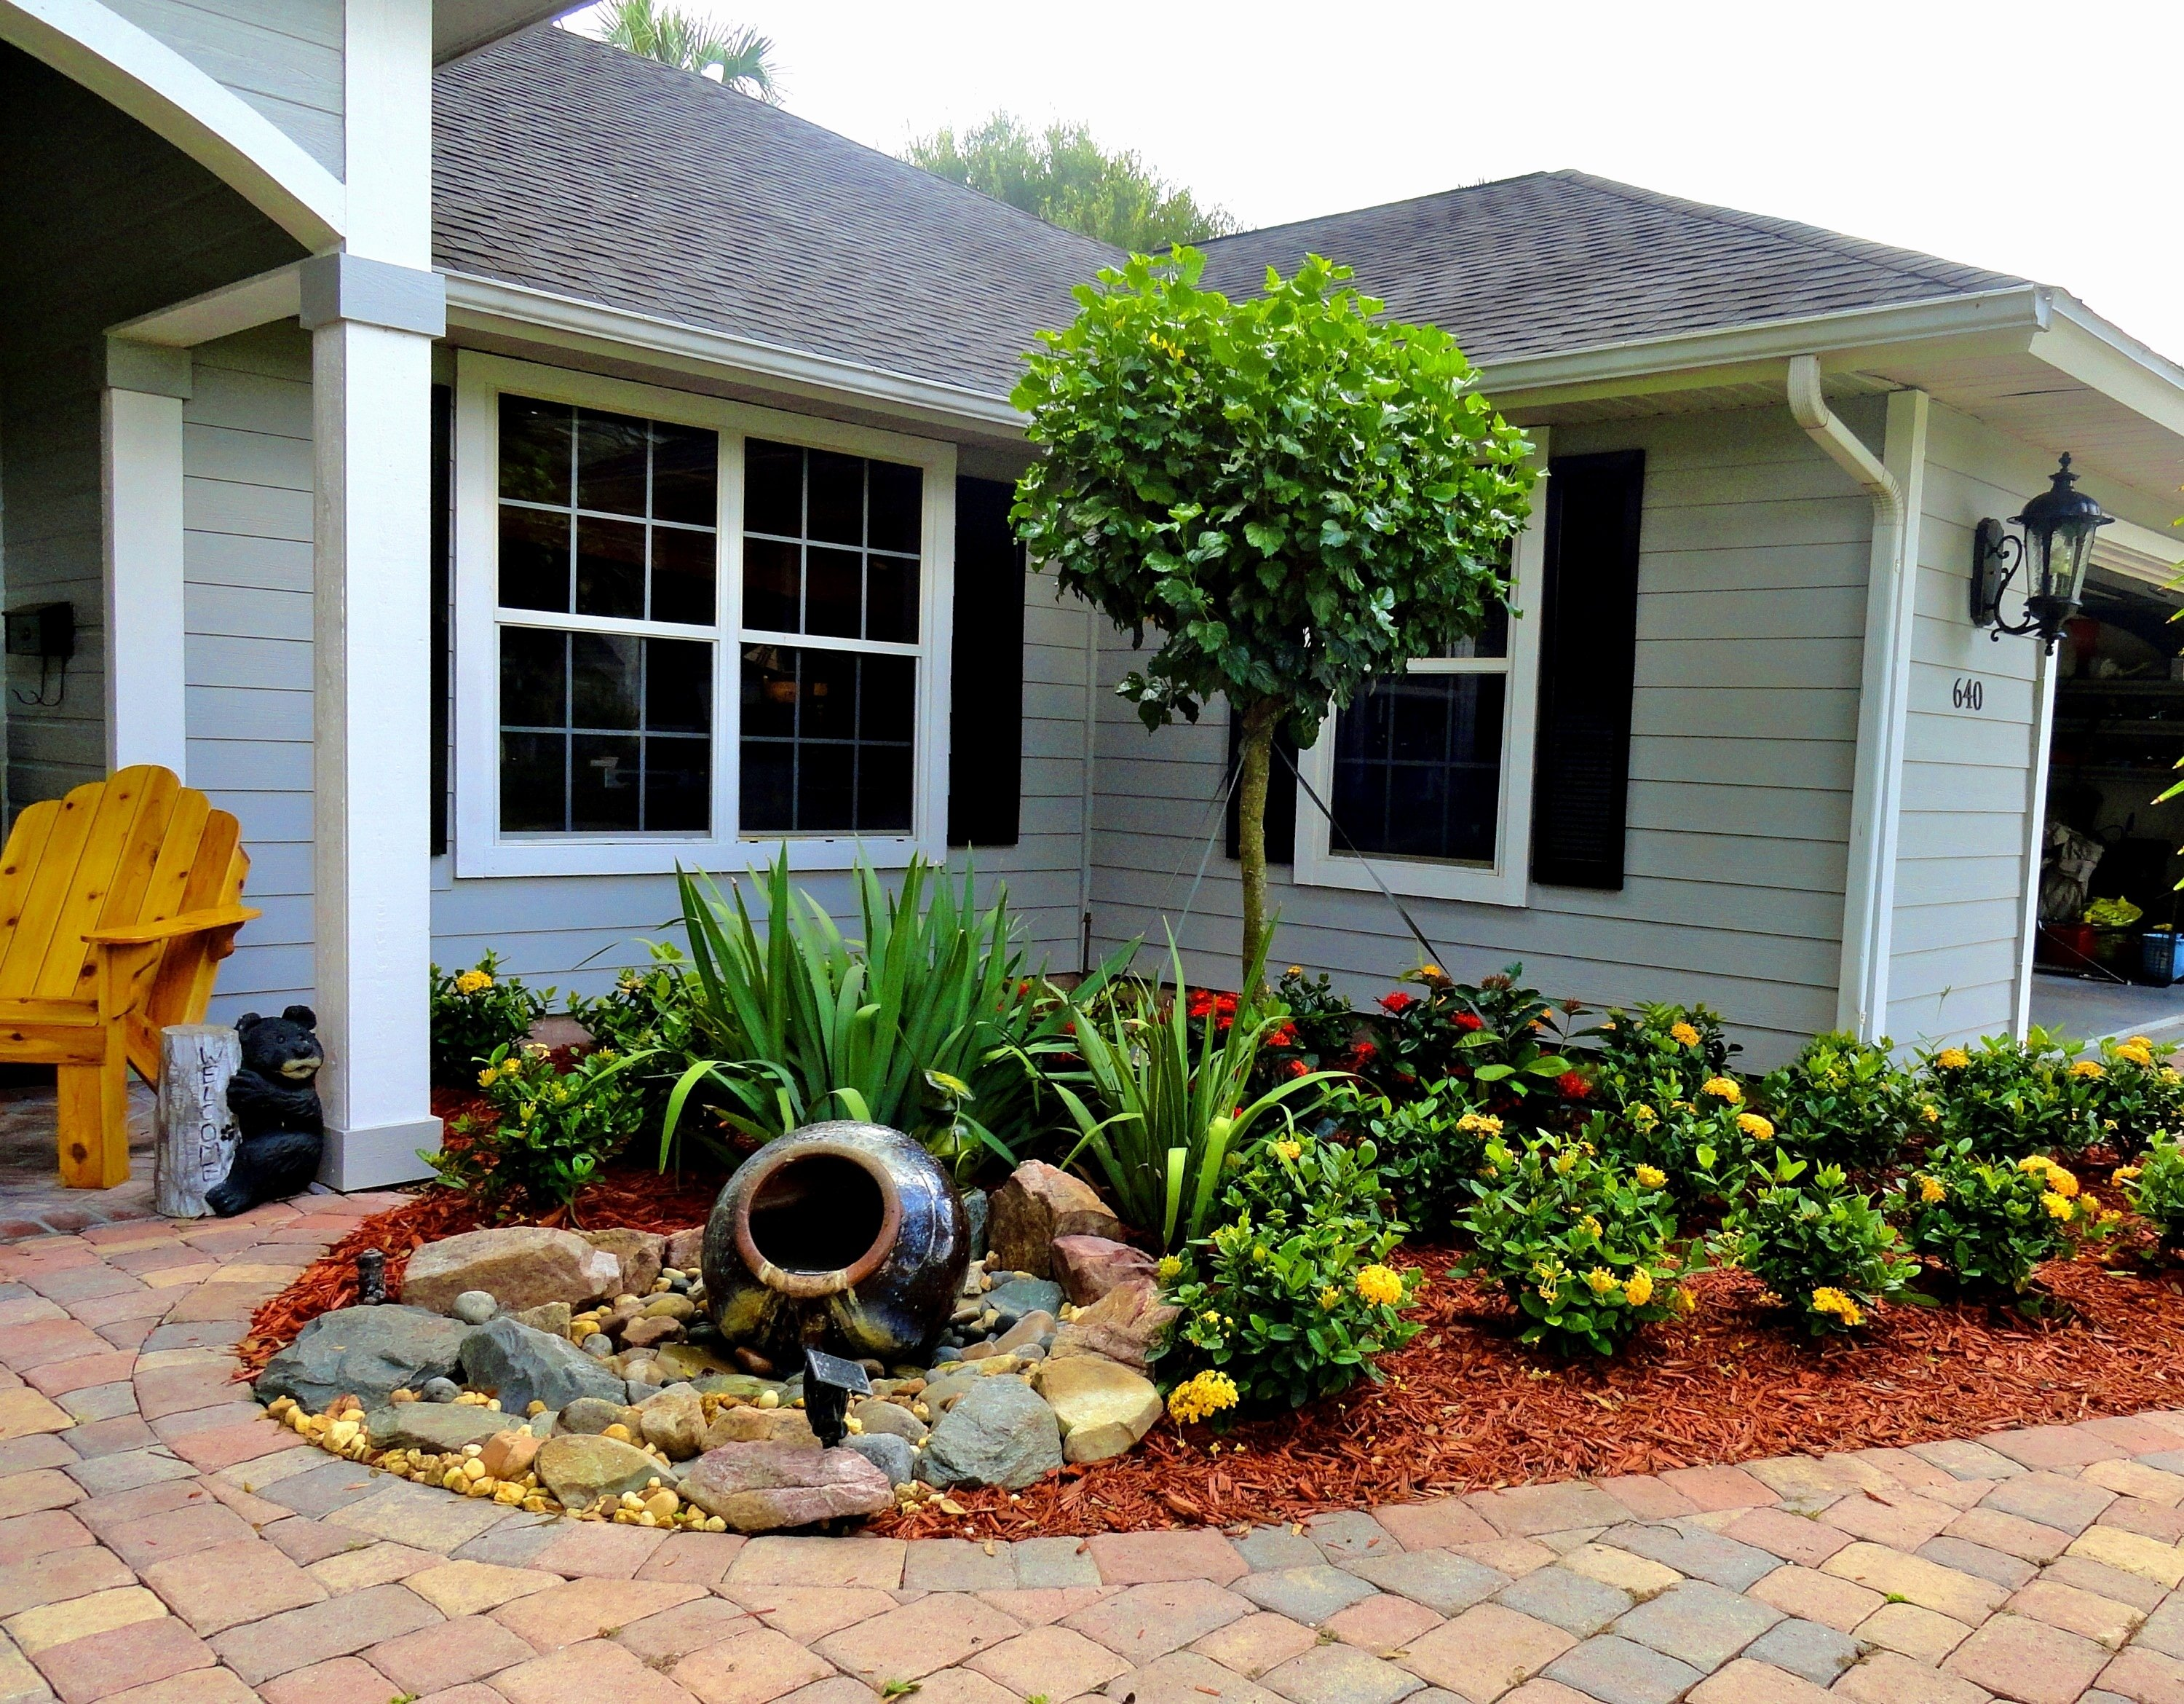 10 Spectacular Front Yard Landscaping Ideas For Small Homes picture 7 of 45 landscape ideas in texas best of bedroom winsome 2021